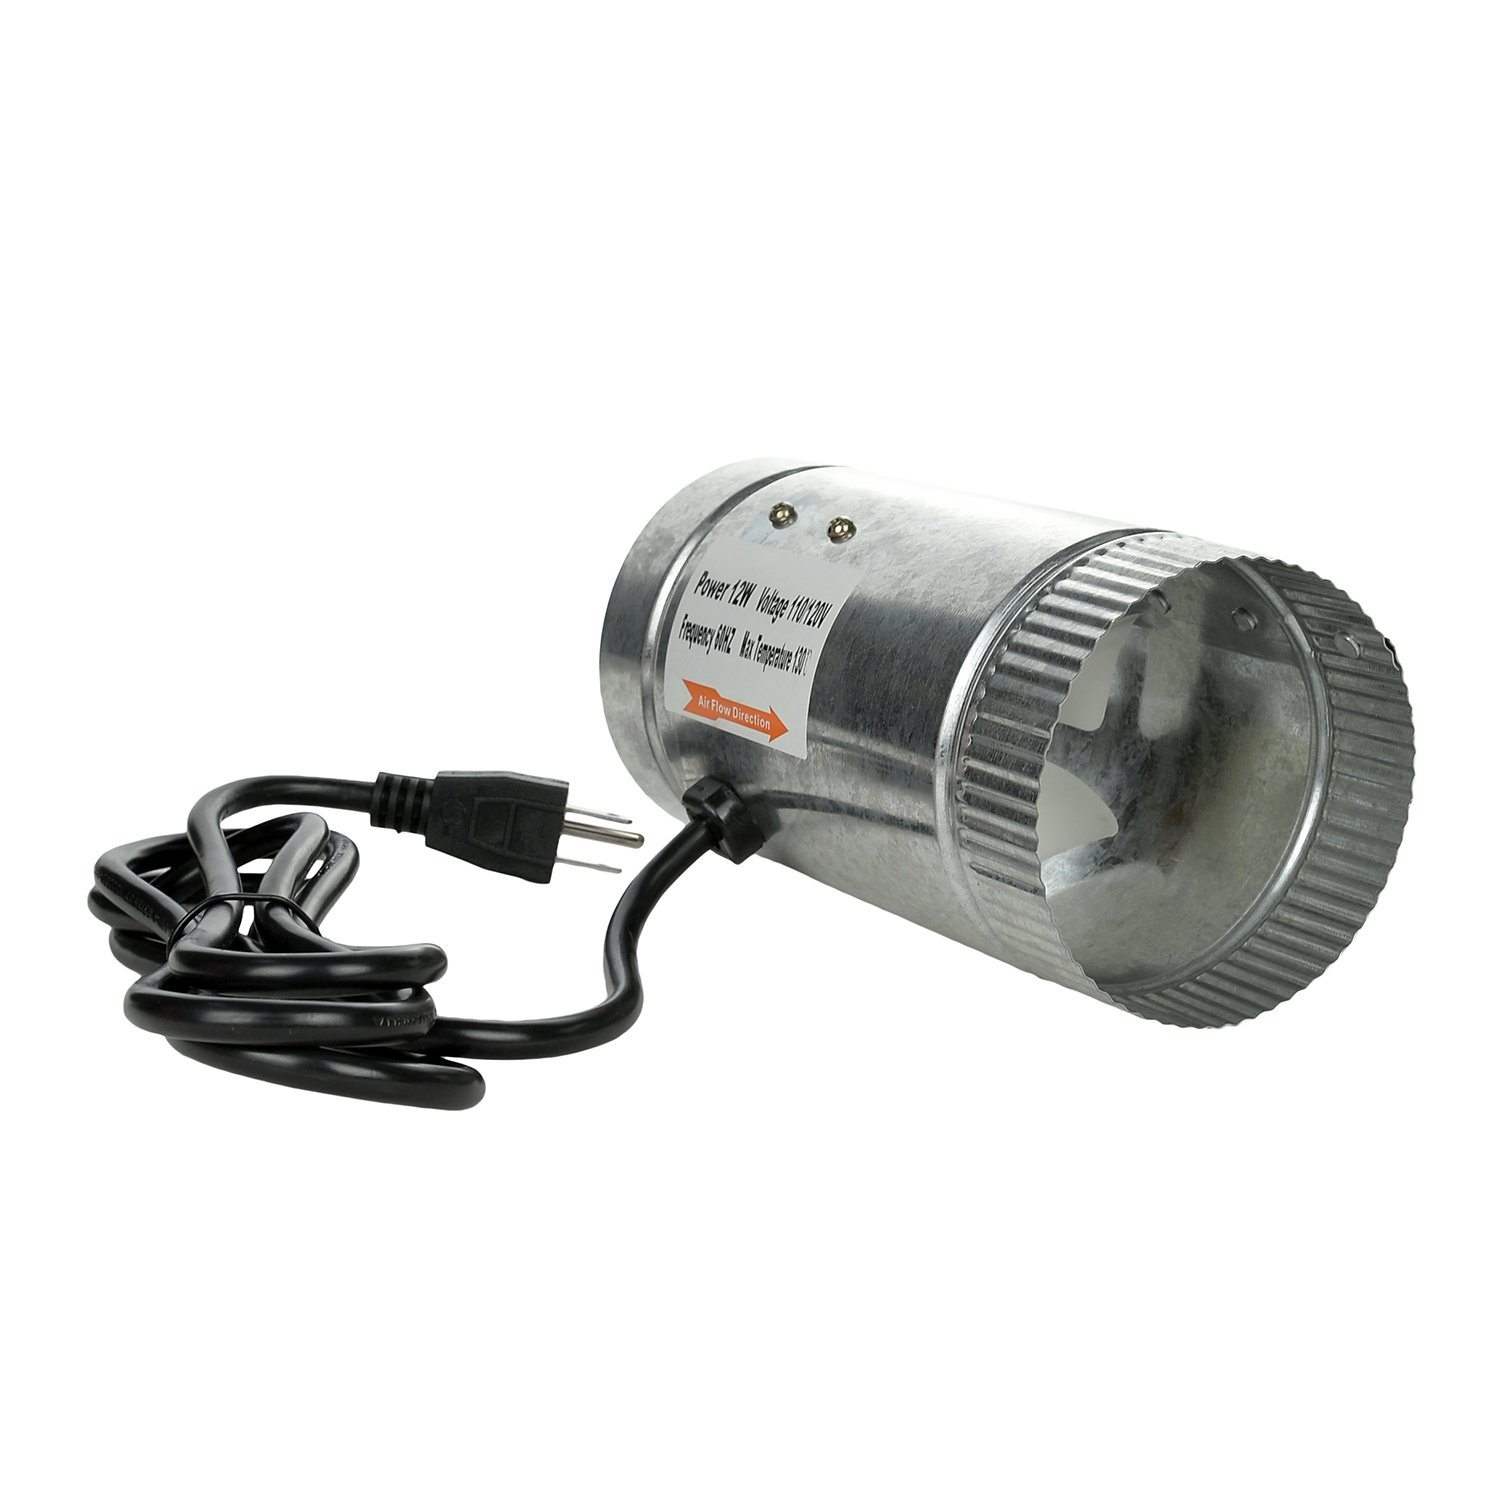 HiHydro 4'' Inline Duct Booster Fan 100 CFM, Low Noise & Extra Long 5.5' Grounded Power Cord (4''/100CFM) by HiHydro (Image #8)